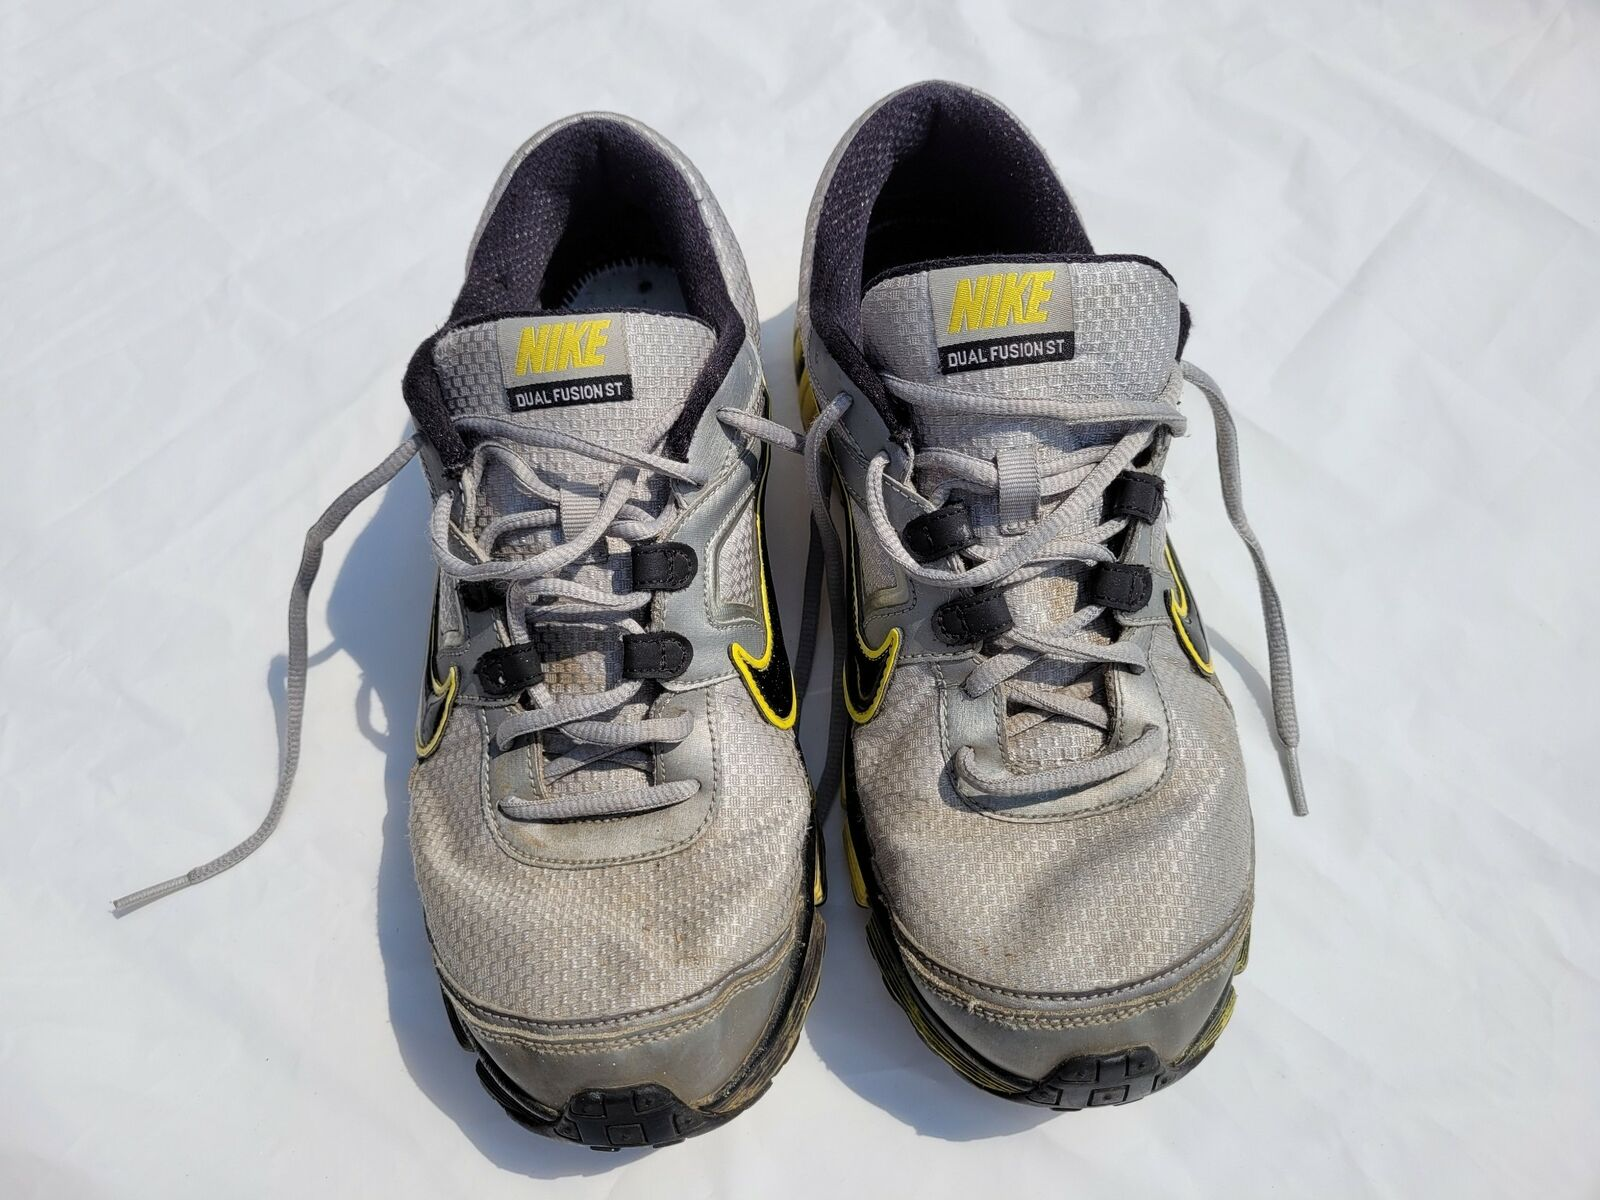 Nike Mens Shoes Silver Yellow and Black Dual Fusion Running Shoe Size 11 on eBay thumbnail